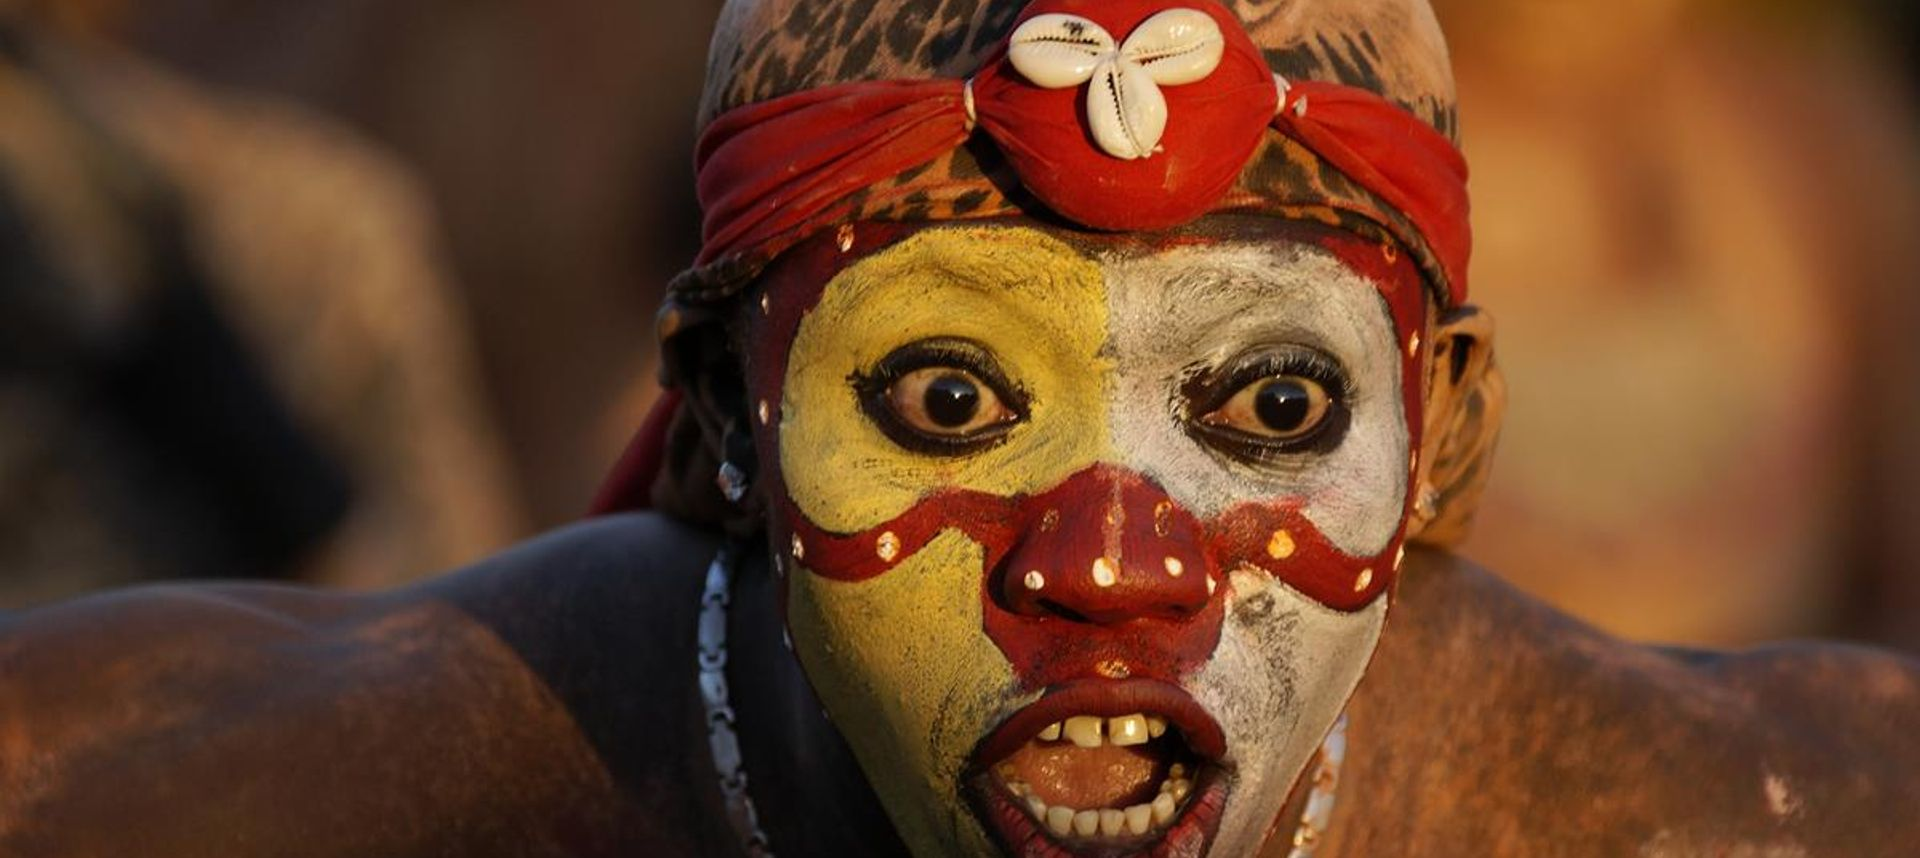 French Guiana, A young parade-goer participating in the French Guiana's Annual Carnival February 14, 2010 in Cayenne, French Guiana (dreamstime.com)